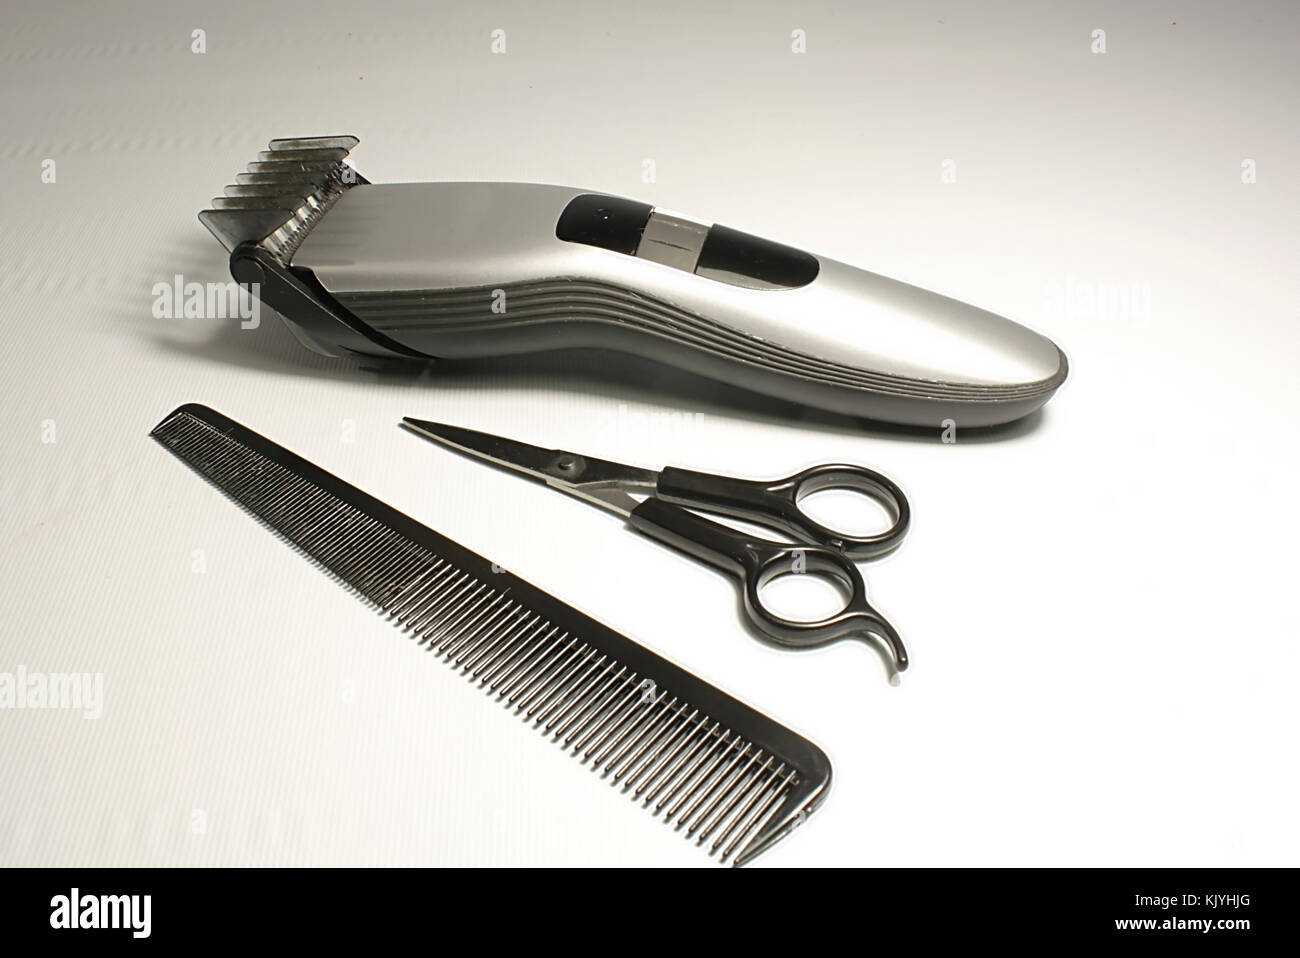 hair trimmer, scissors and combs - Stock Image